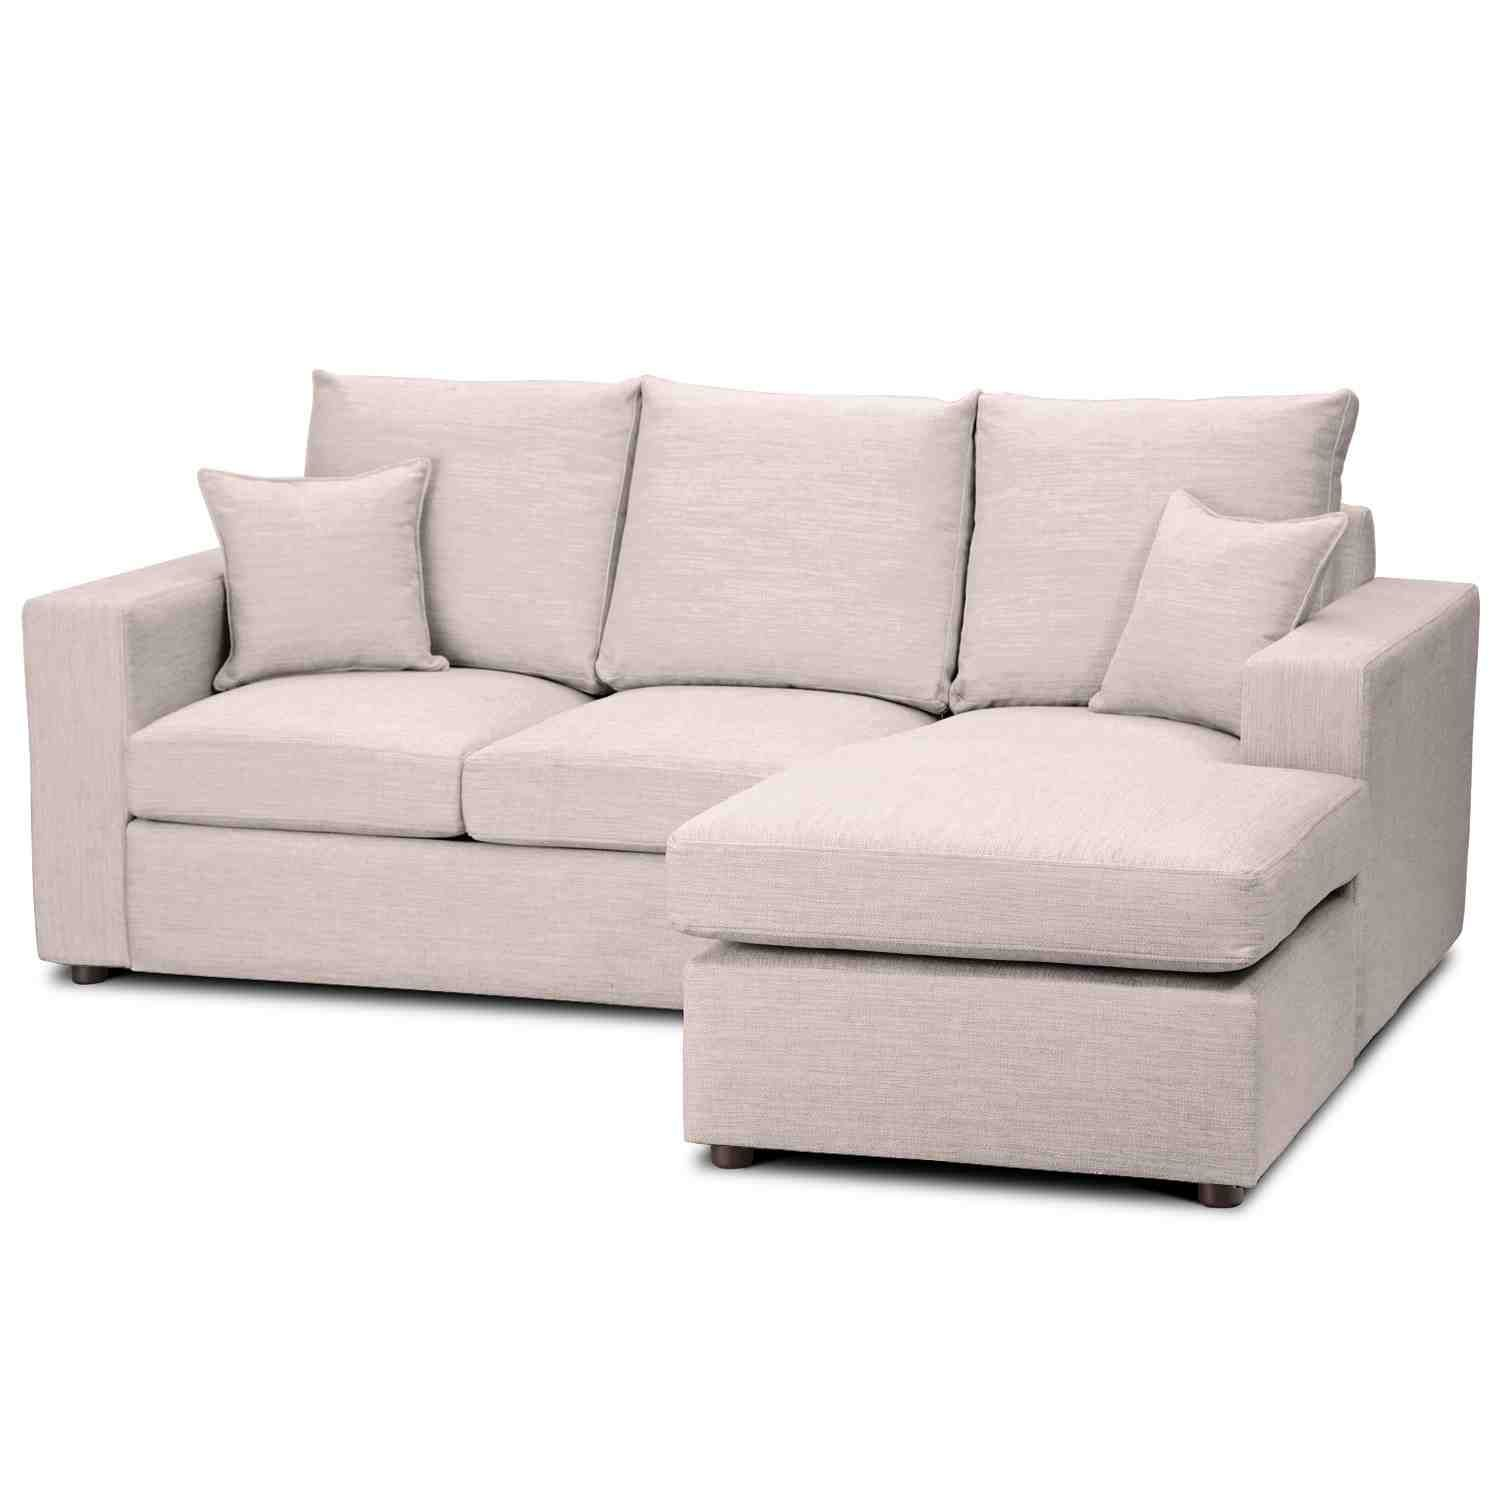 3 Seater Corner Sofa Sofa Bed With Chaise Sofa Bed Sofa Bed Living Room